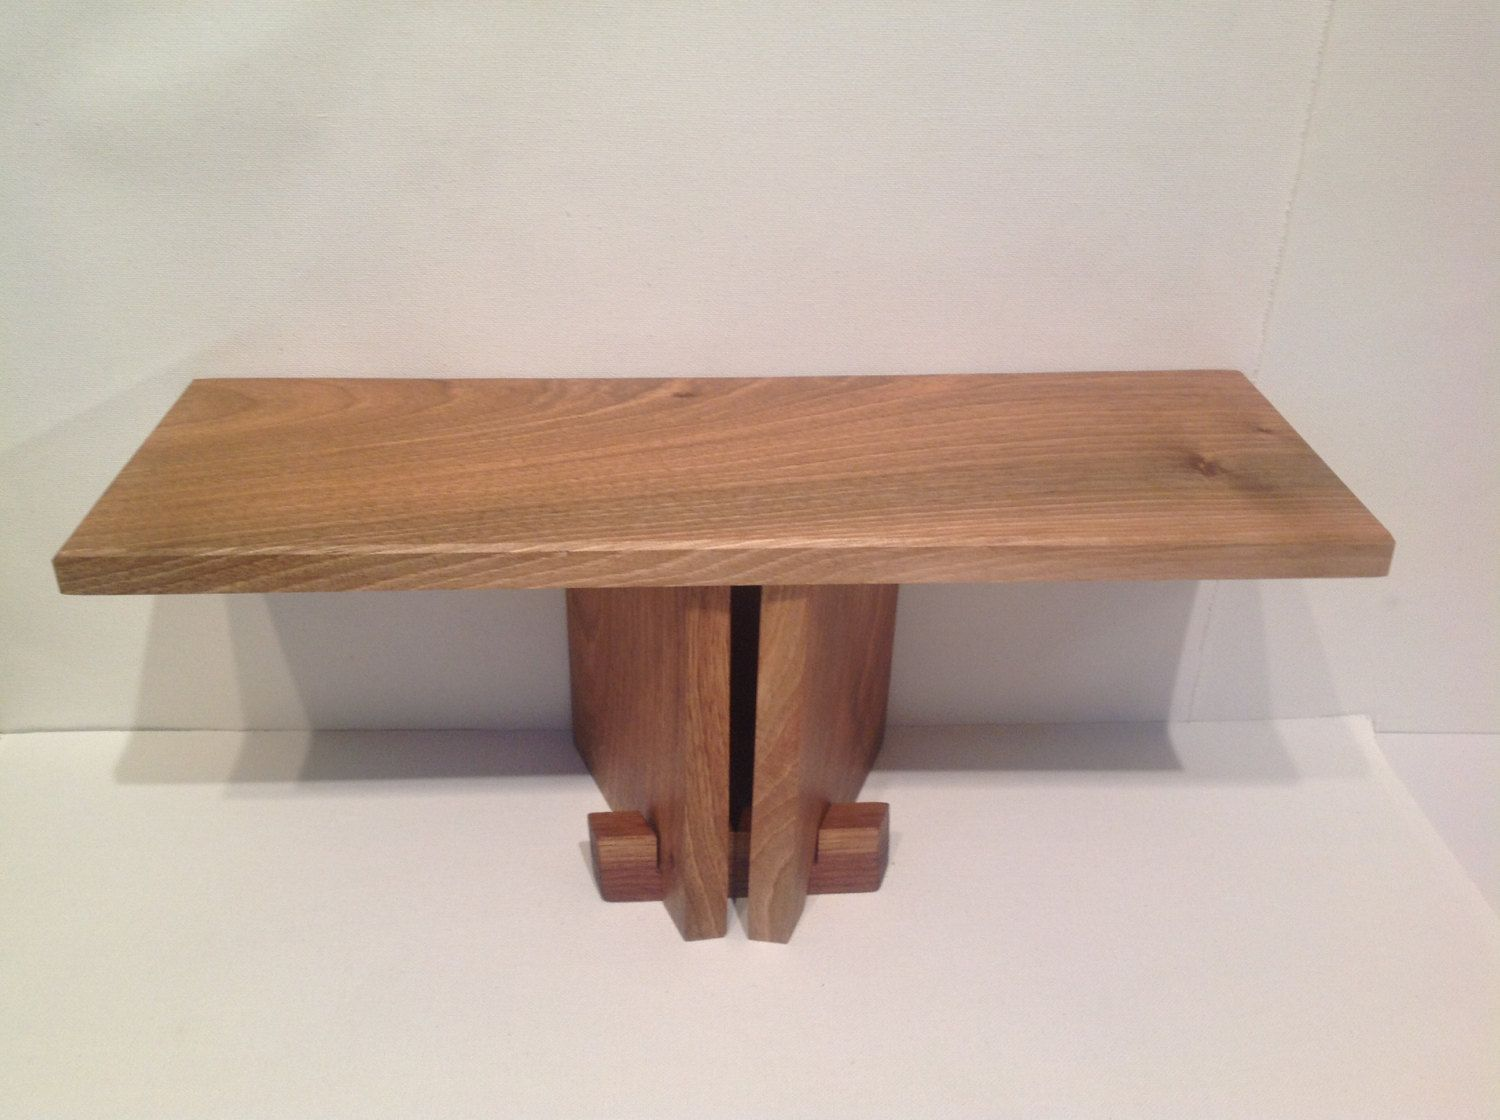 meditation bench stool collapsable portable wood - maple and